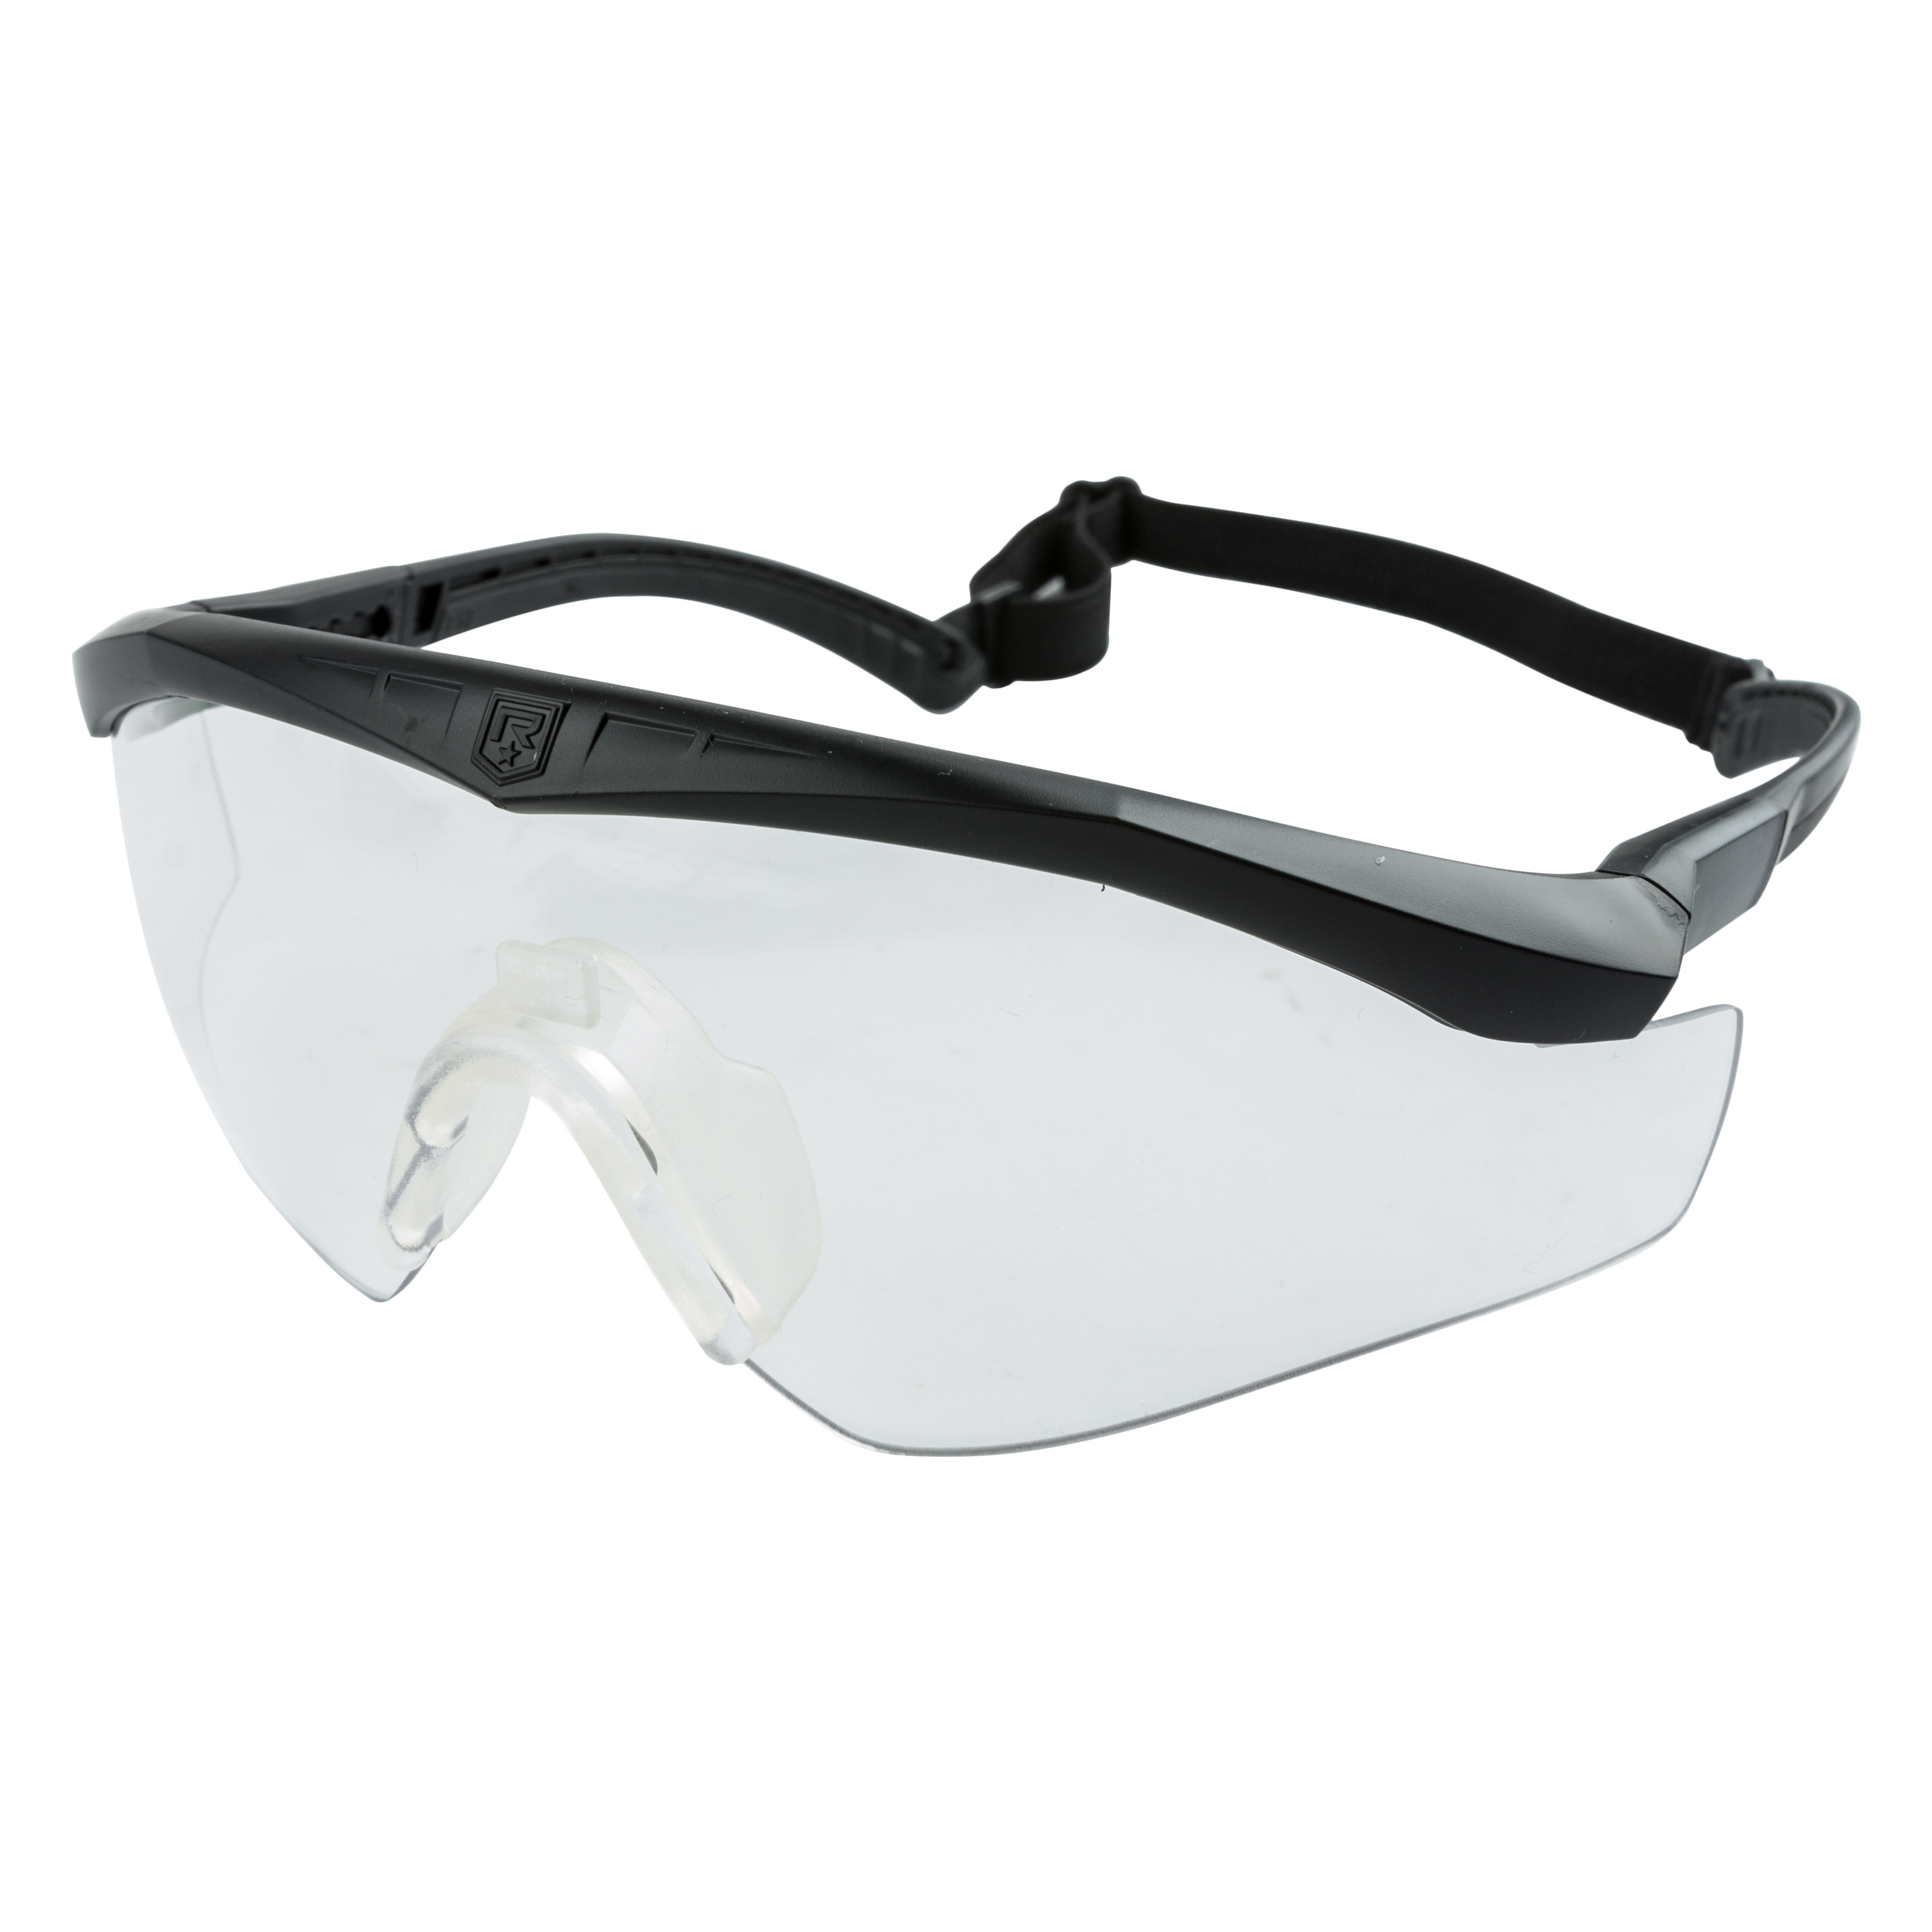 Revision Sawfly Max-Wrap Glasses Basic clear